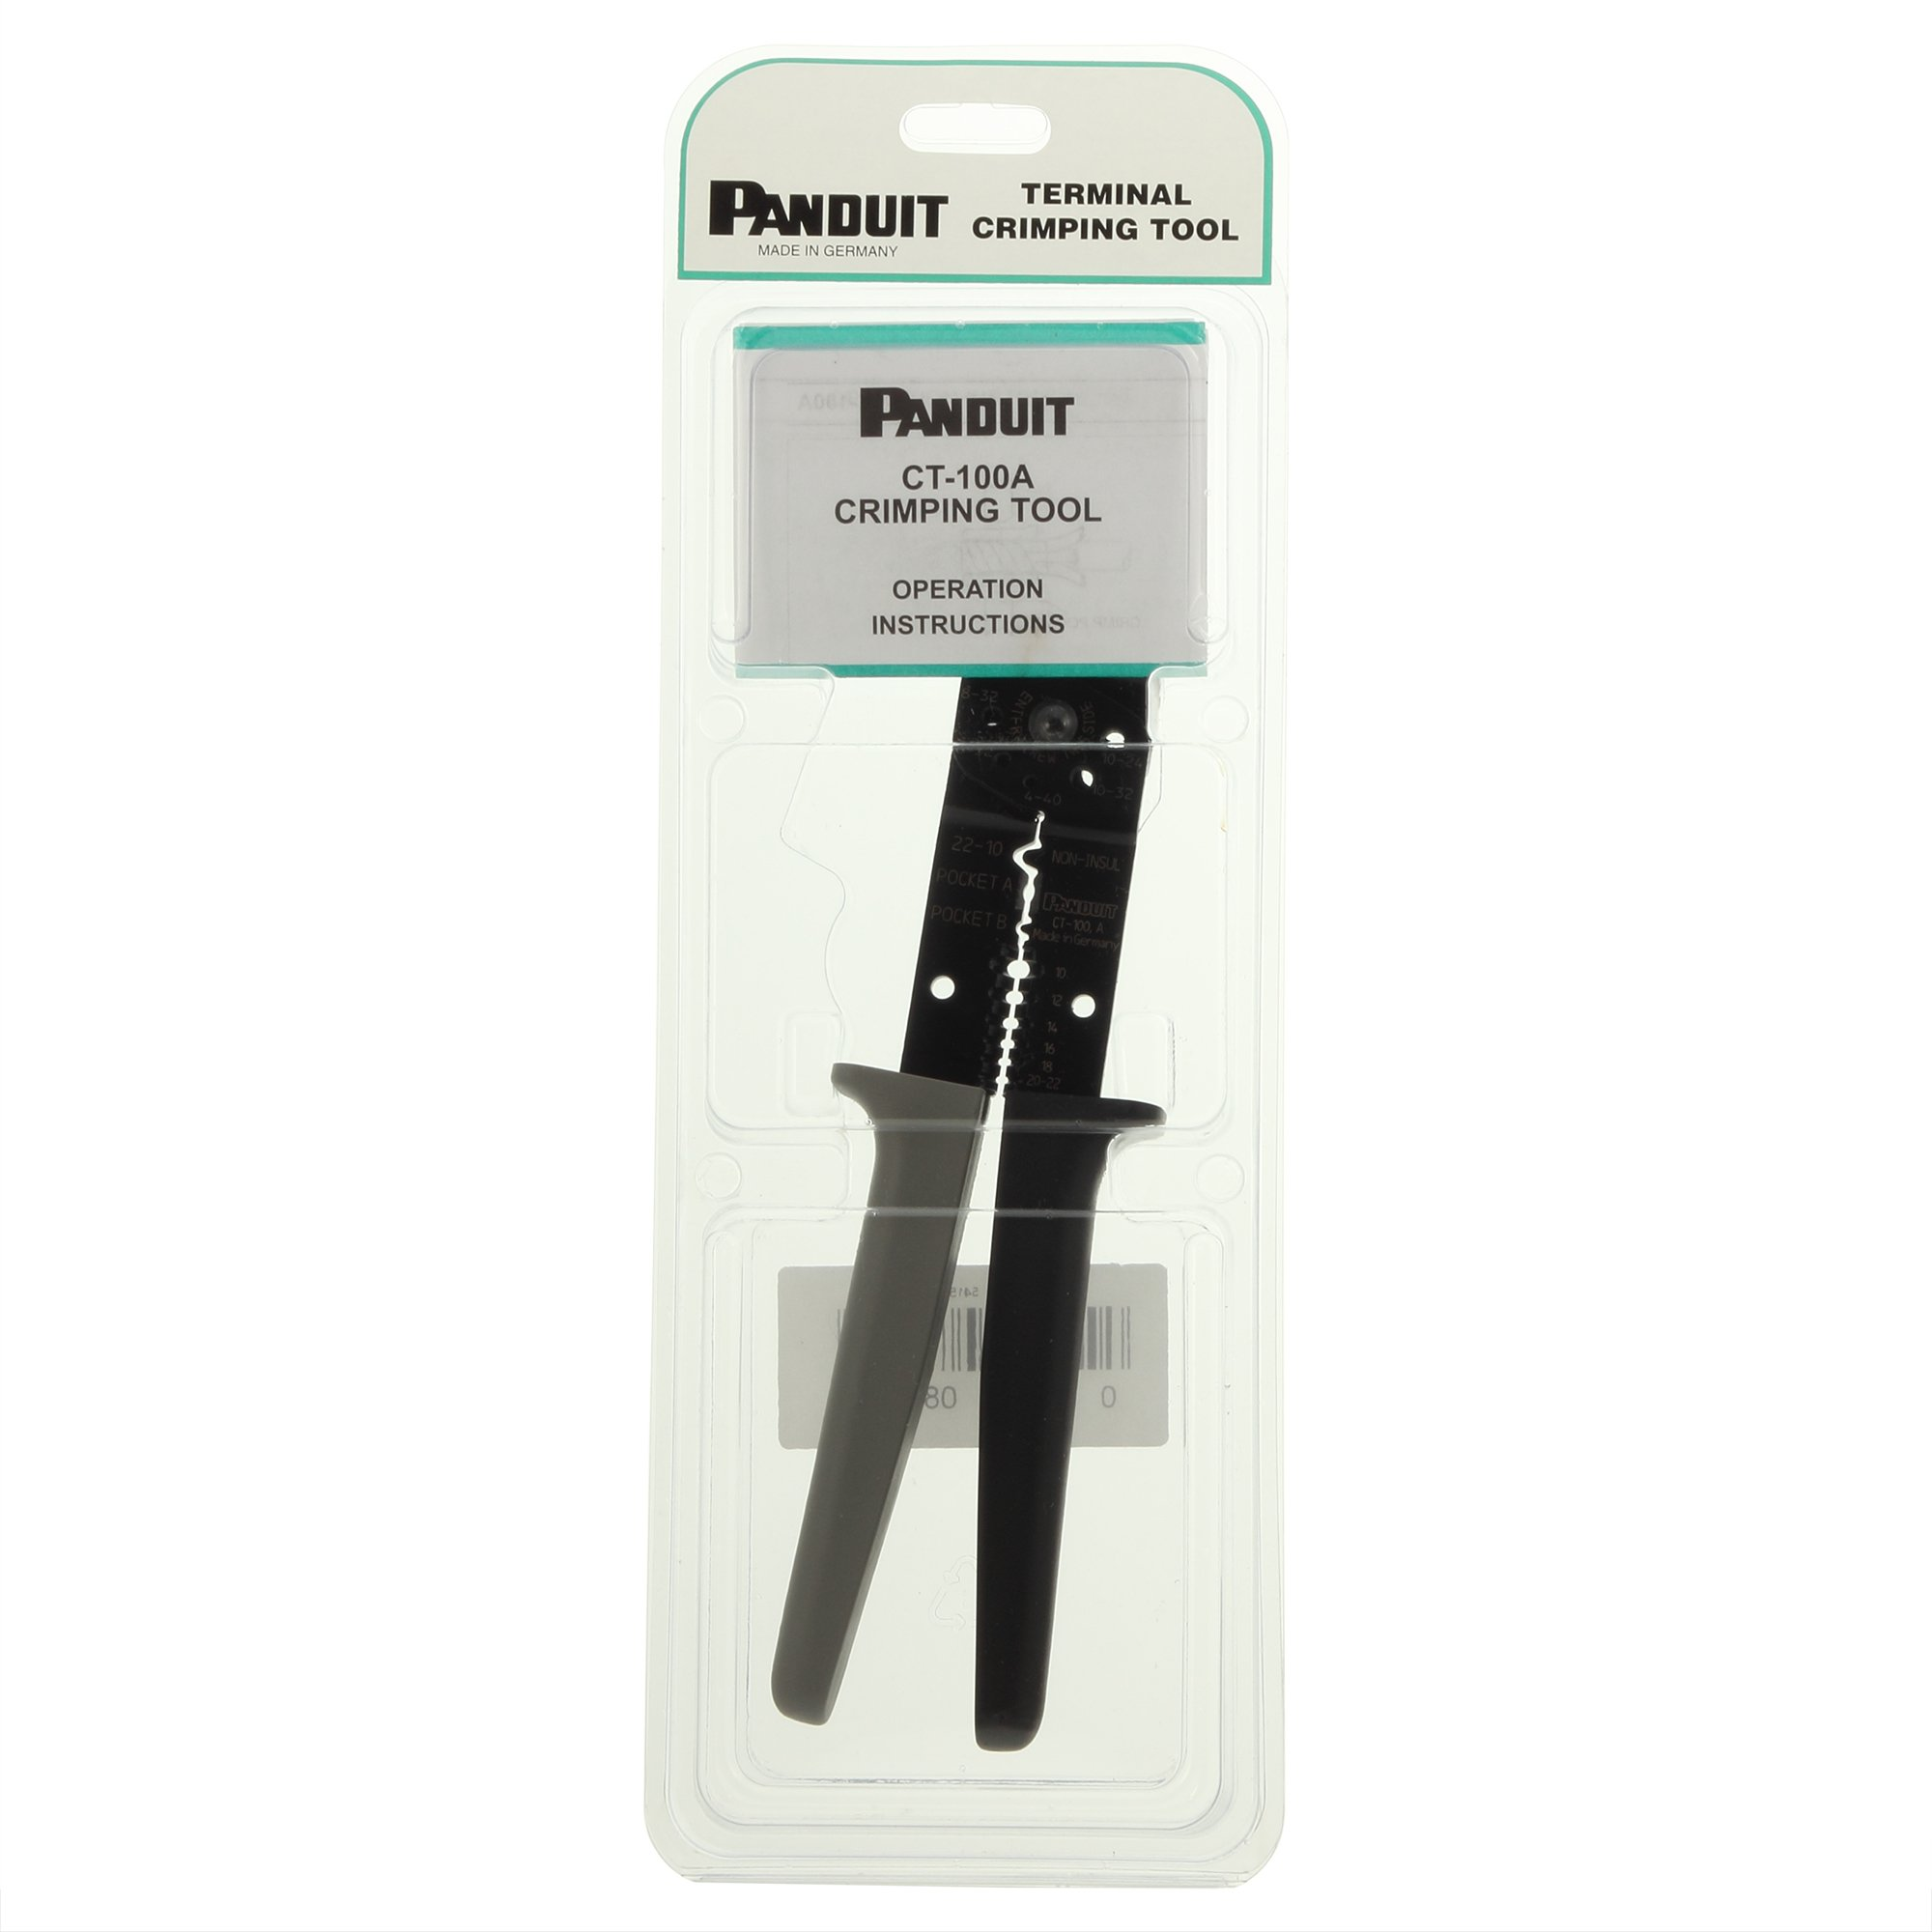 Panduit CT-100A Hand-Operated Plier-Type Crimp Tool